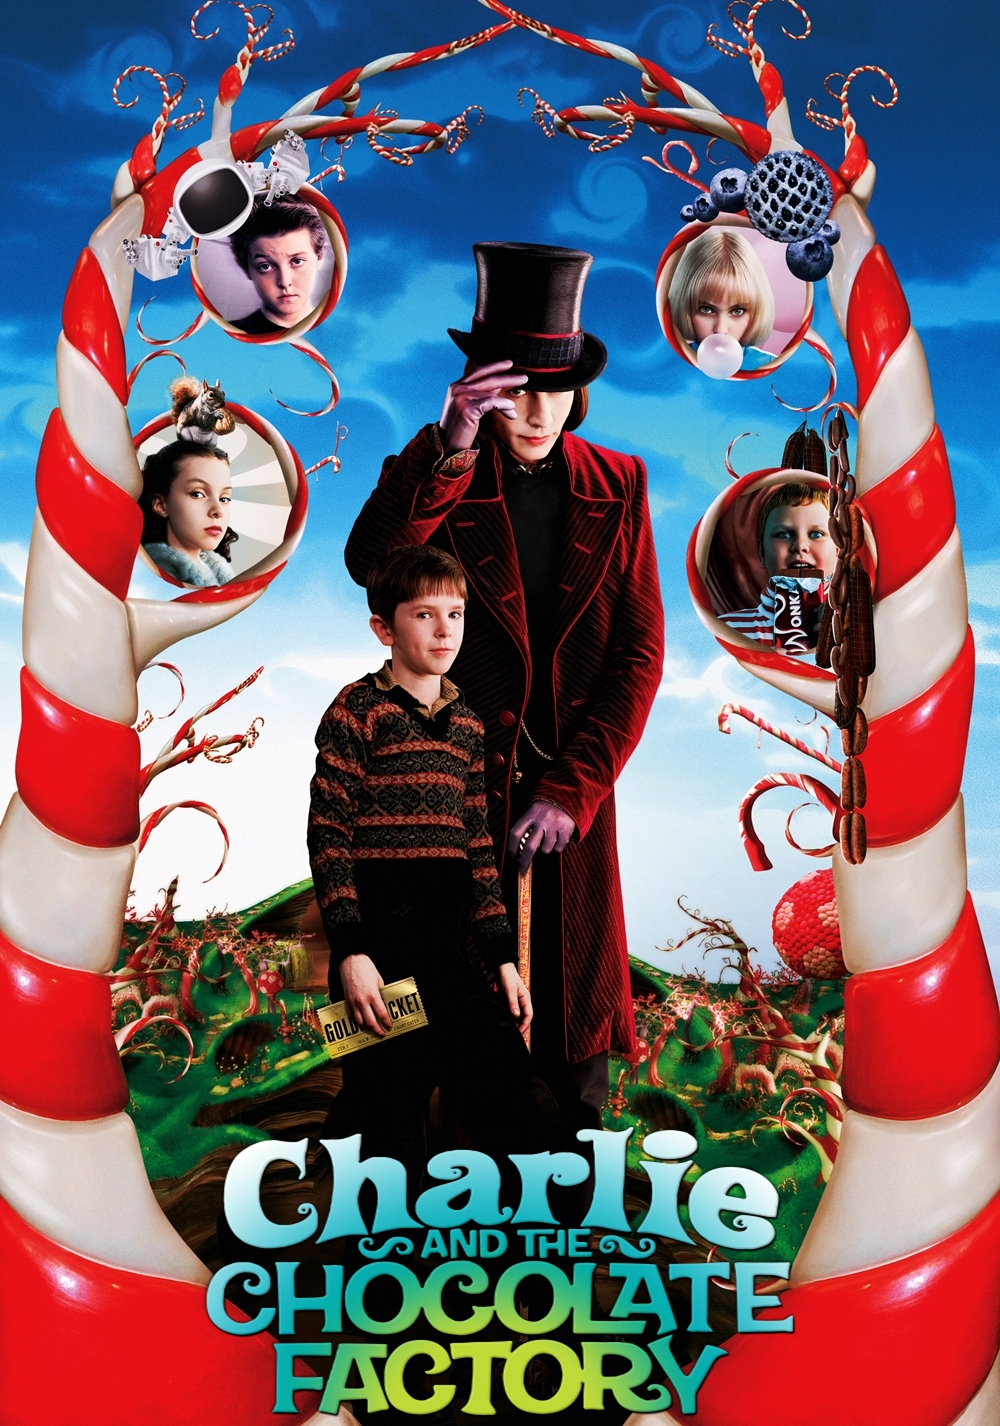 charlie-and-the-chocolate-factory-53273584b6e29.jpeg